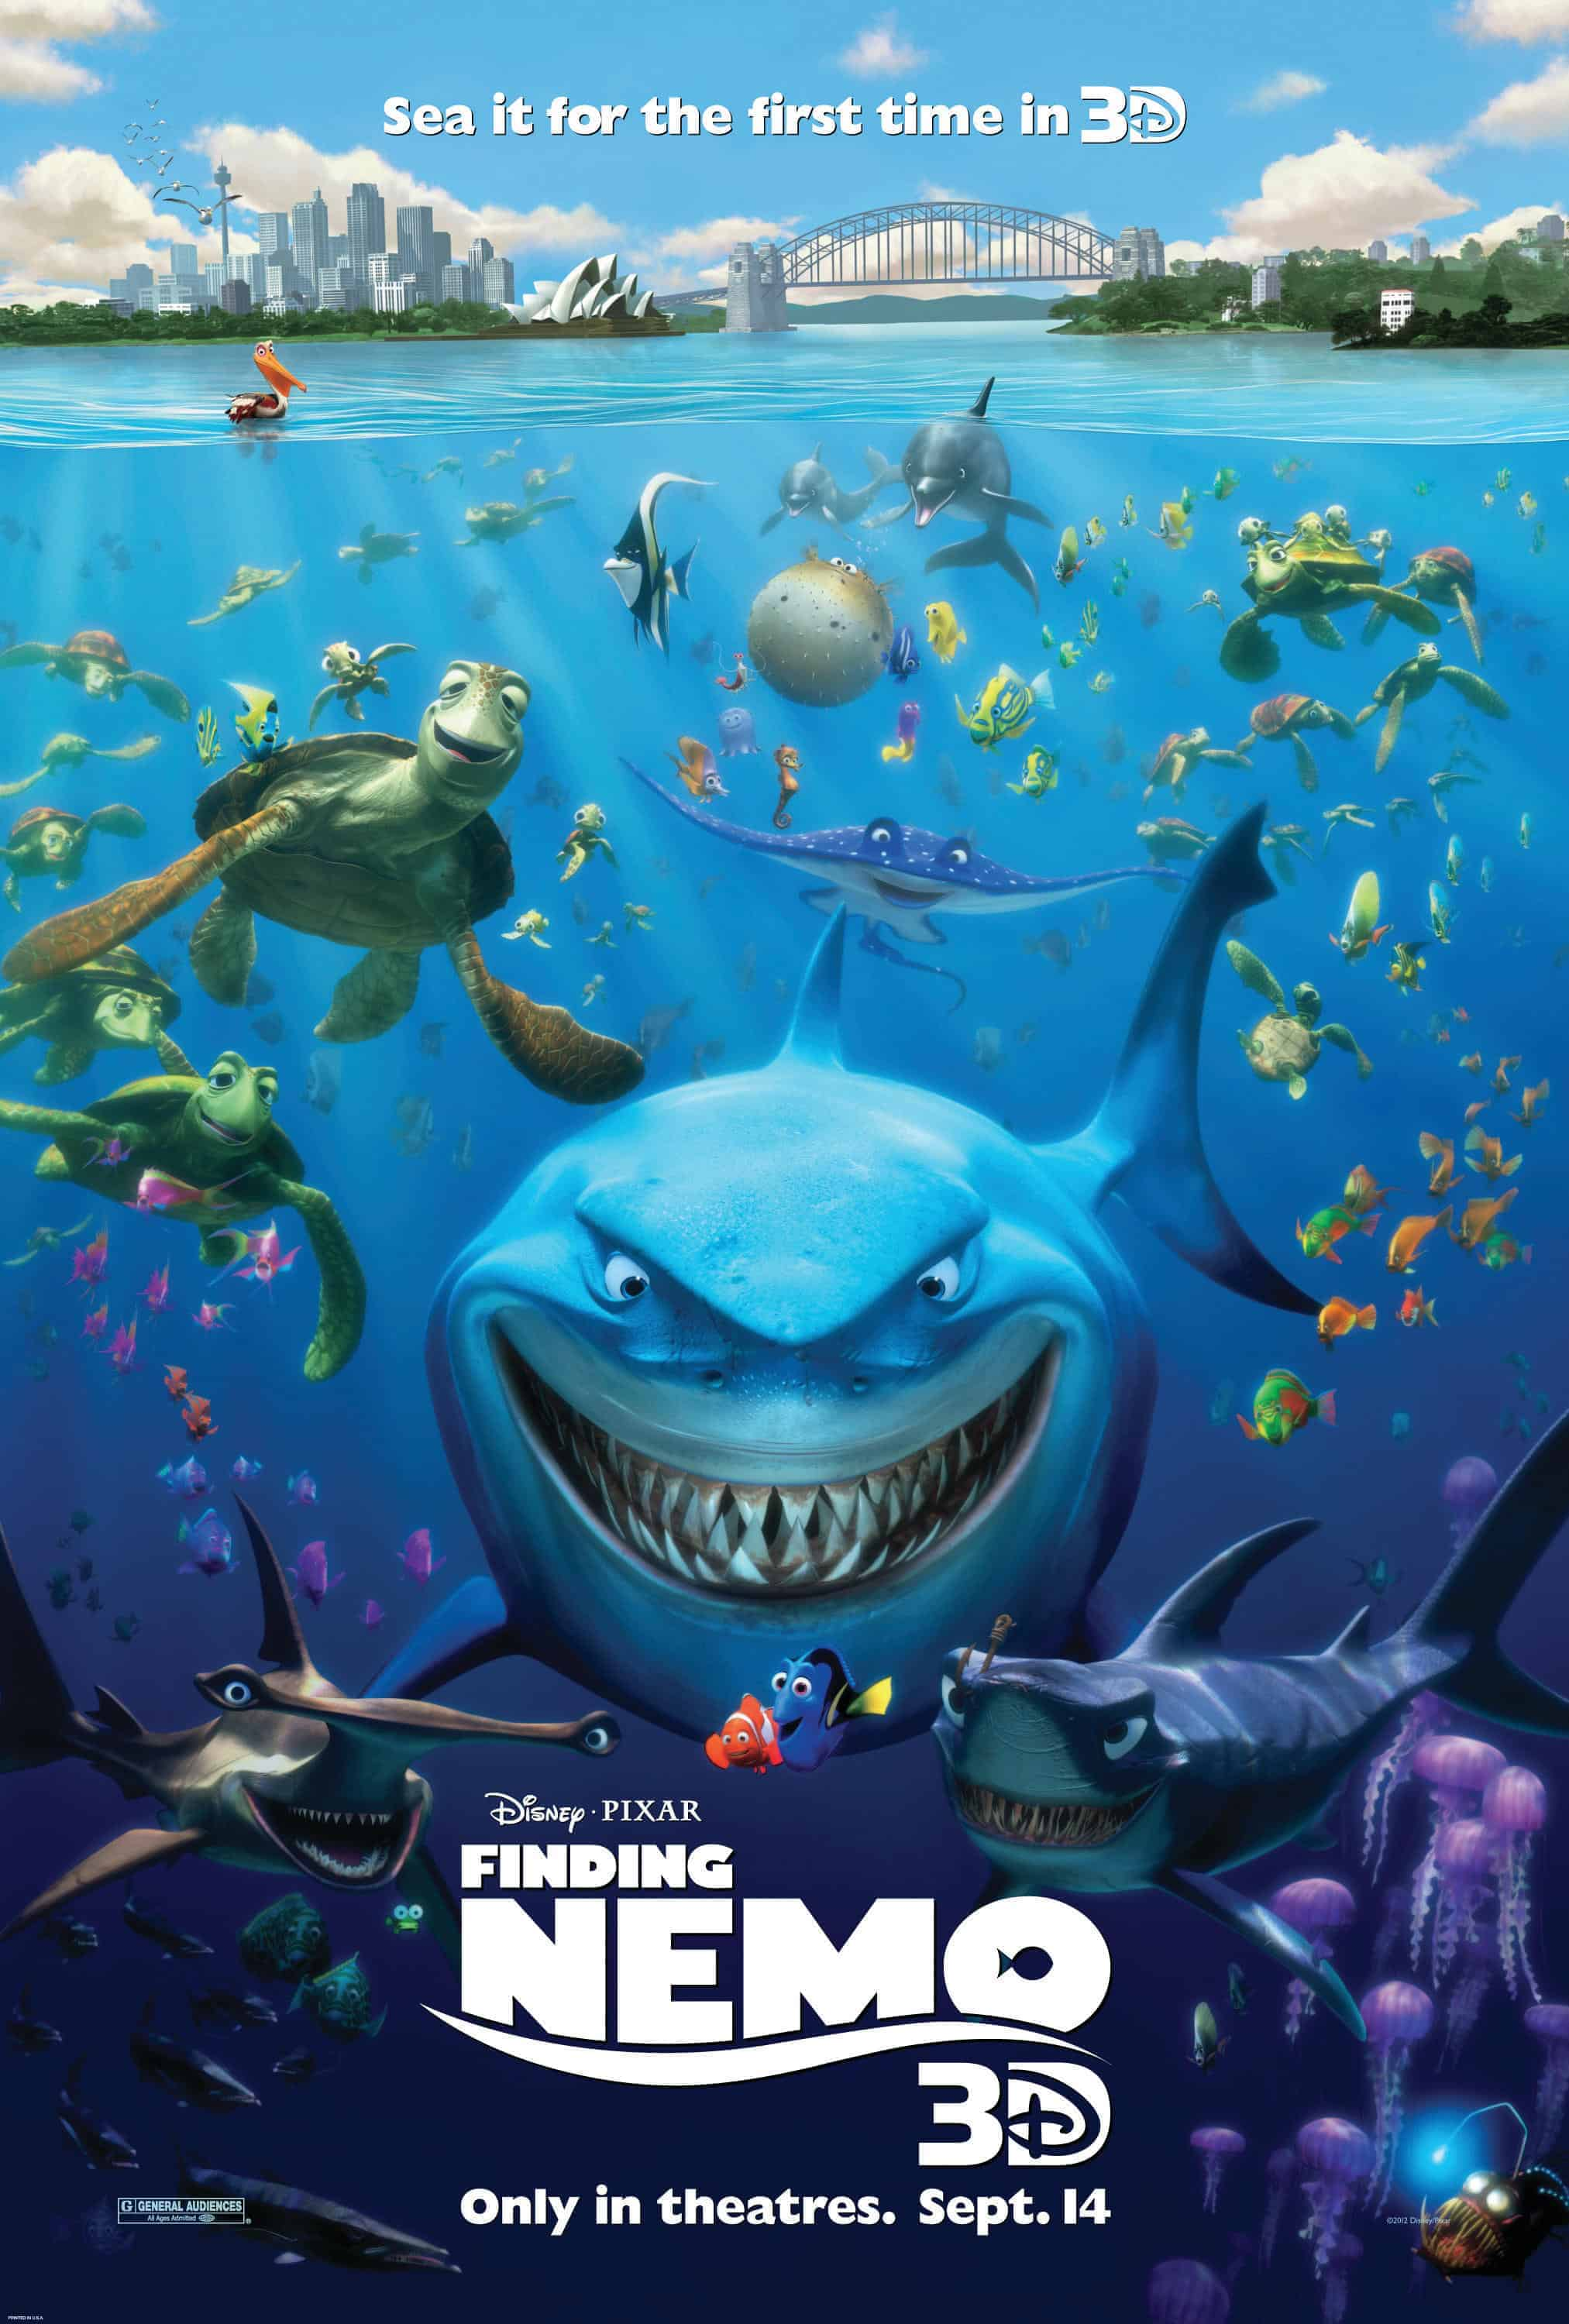 Opening to Finding Nemo 2003 AMC Theater